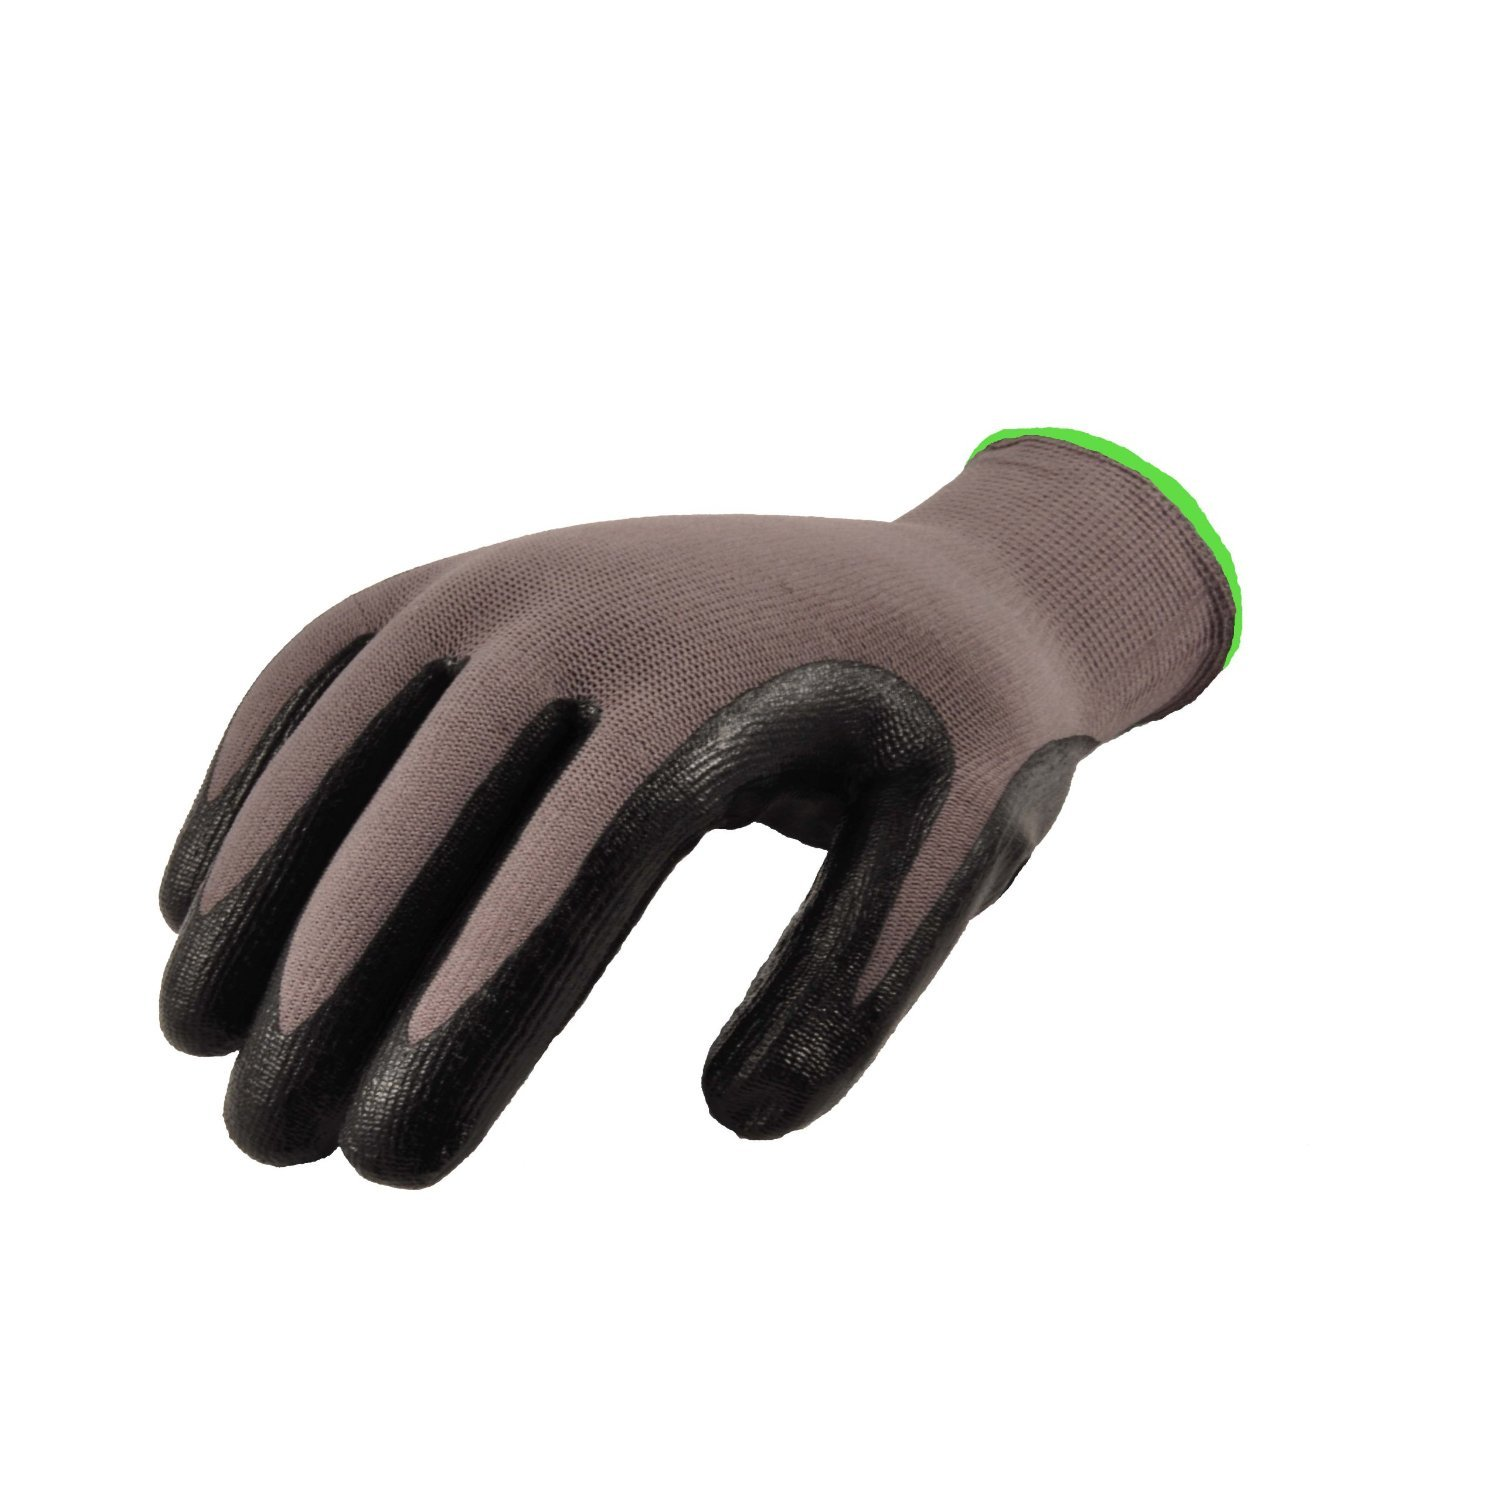 GF Gloves 1519XL-300 Seamless Knit Nylon Nitrile Form Coated Work Gloves, Black, X-Large (Pack of 300)